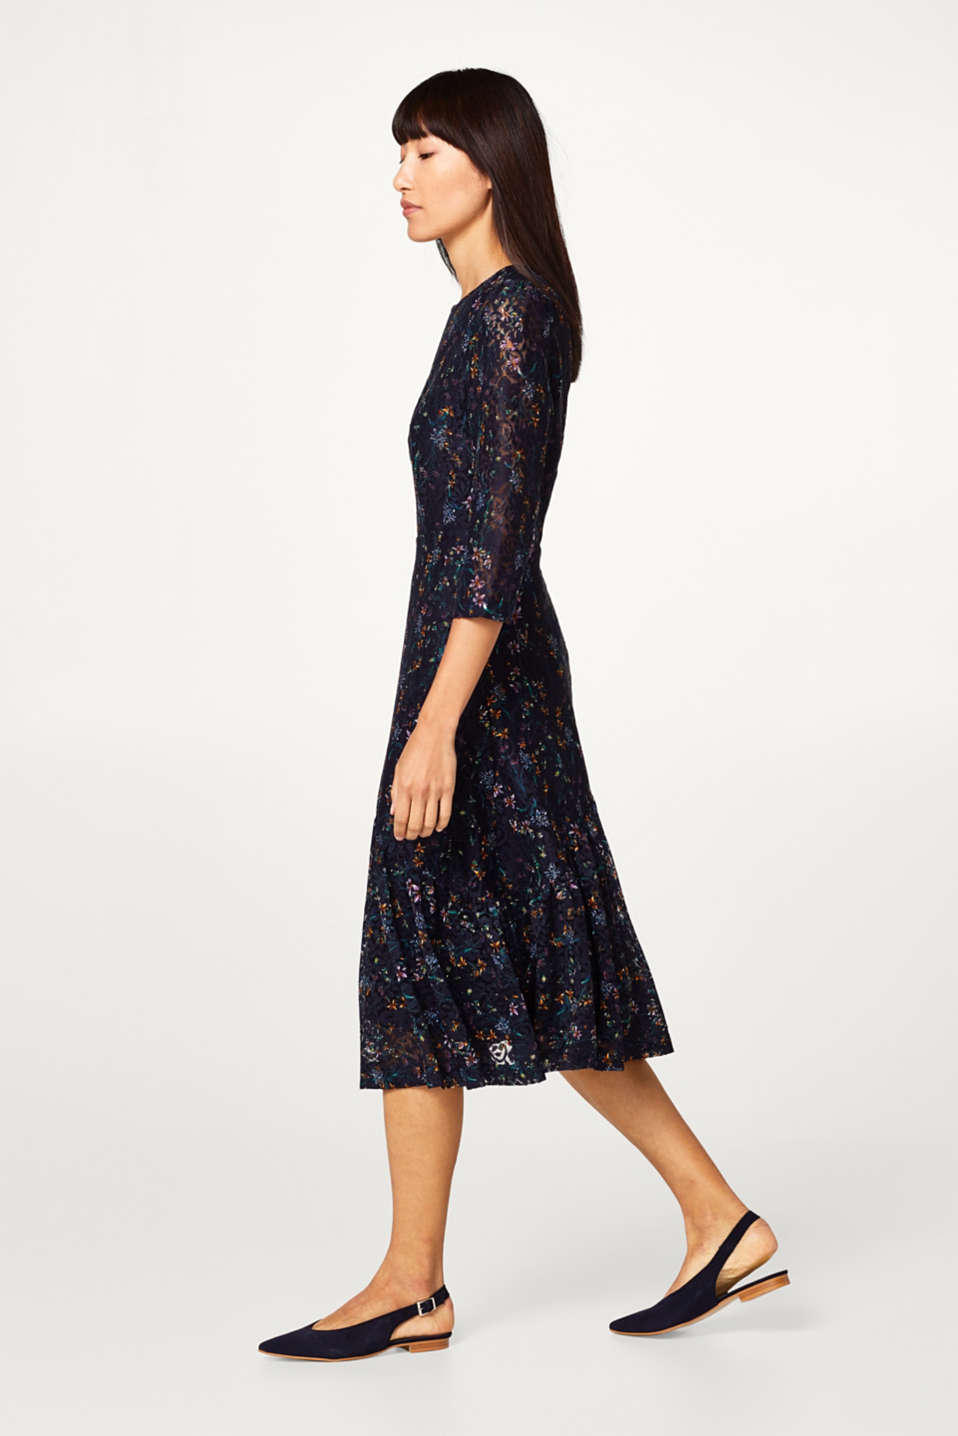 Lace dress with a floral pattern and frilled trim